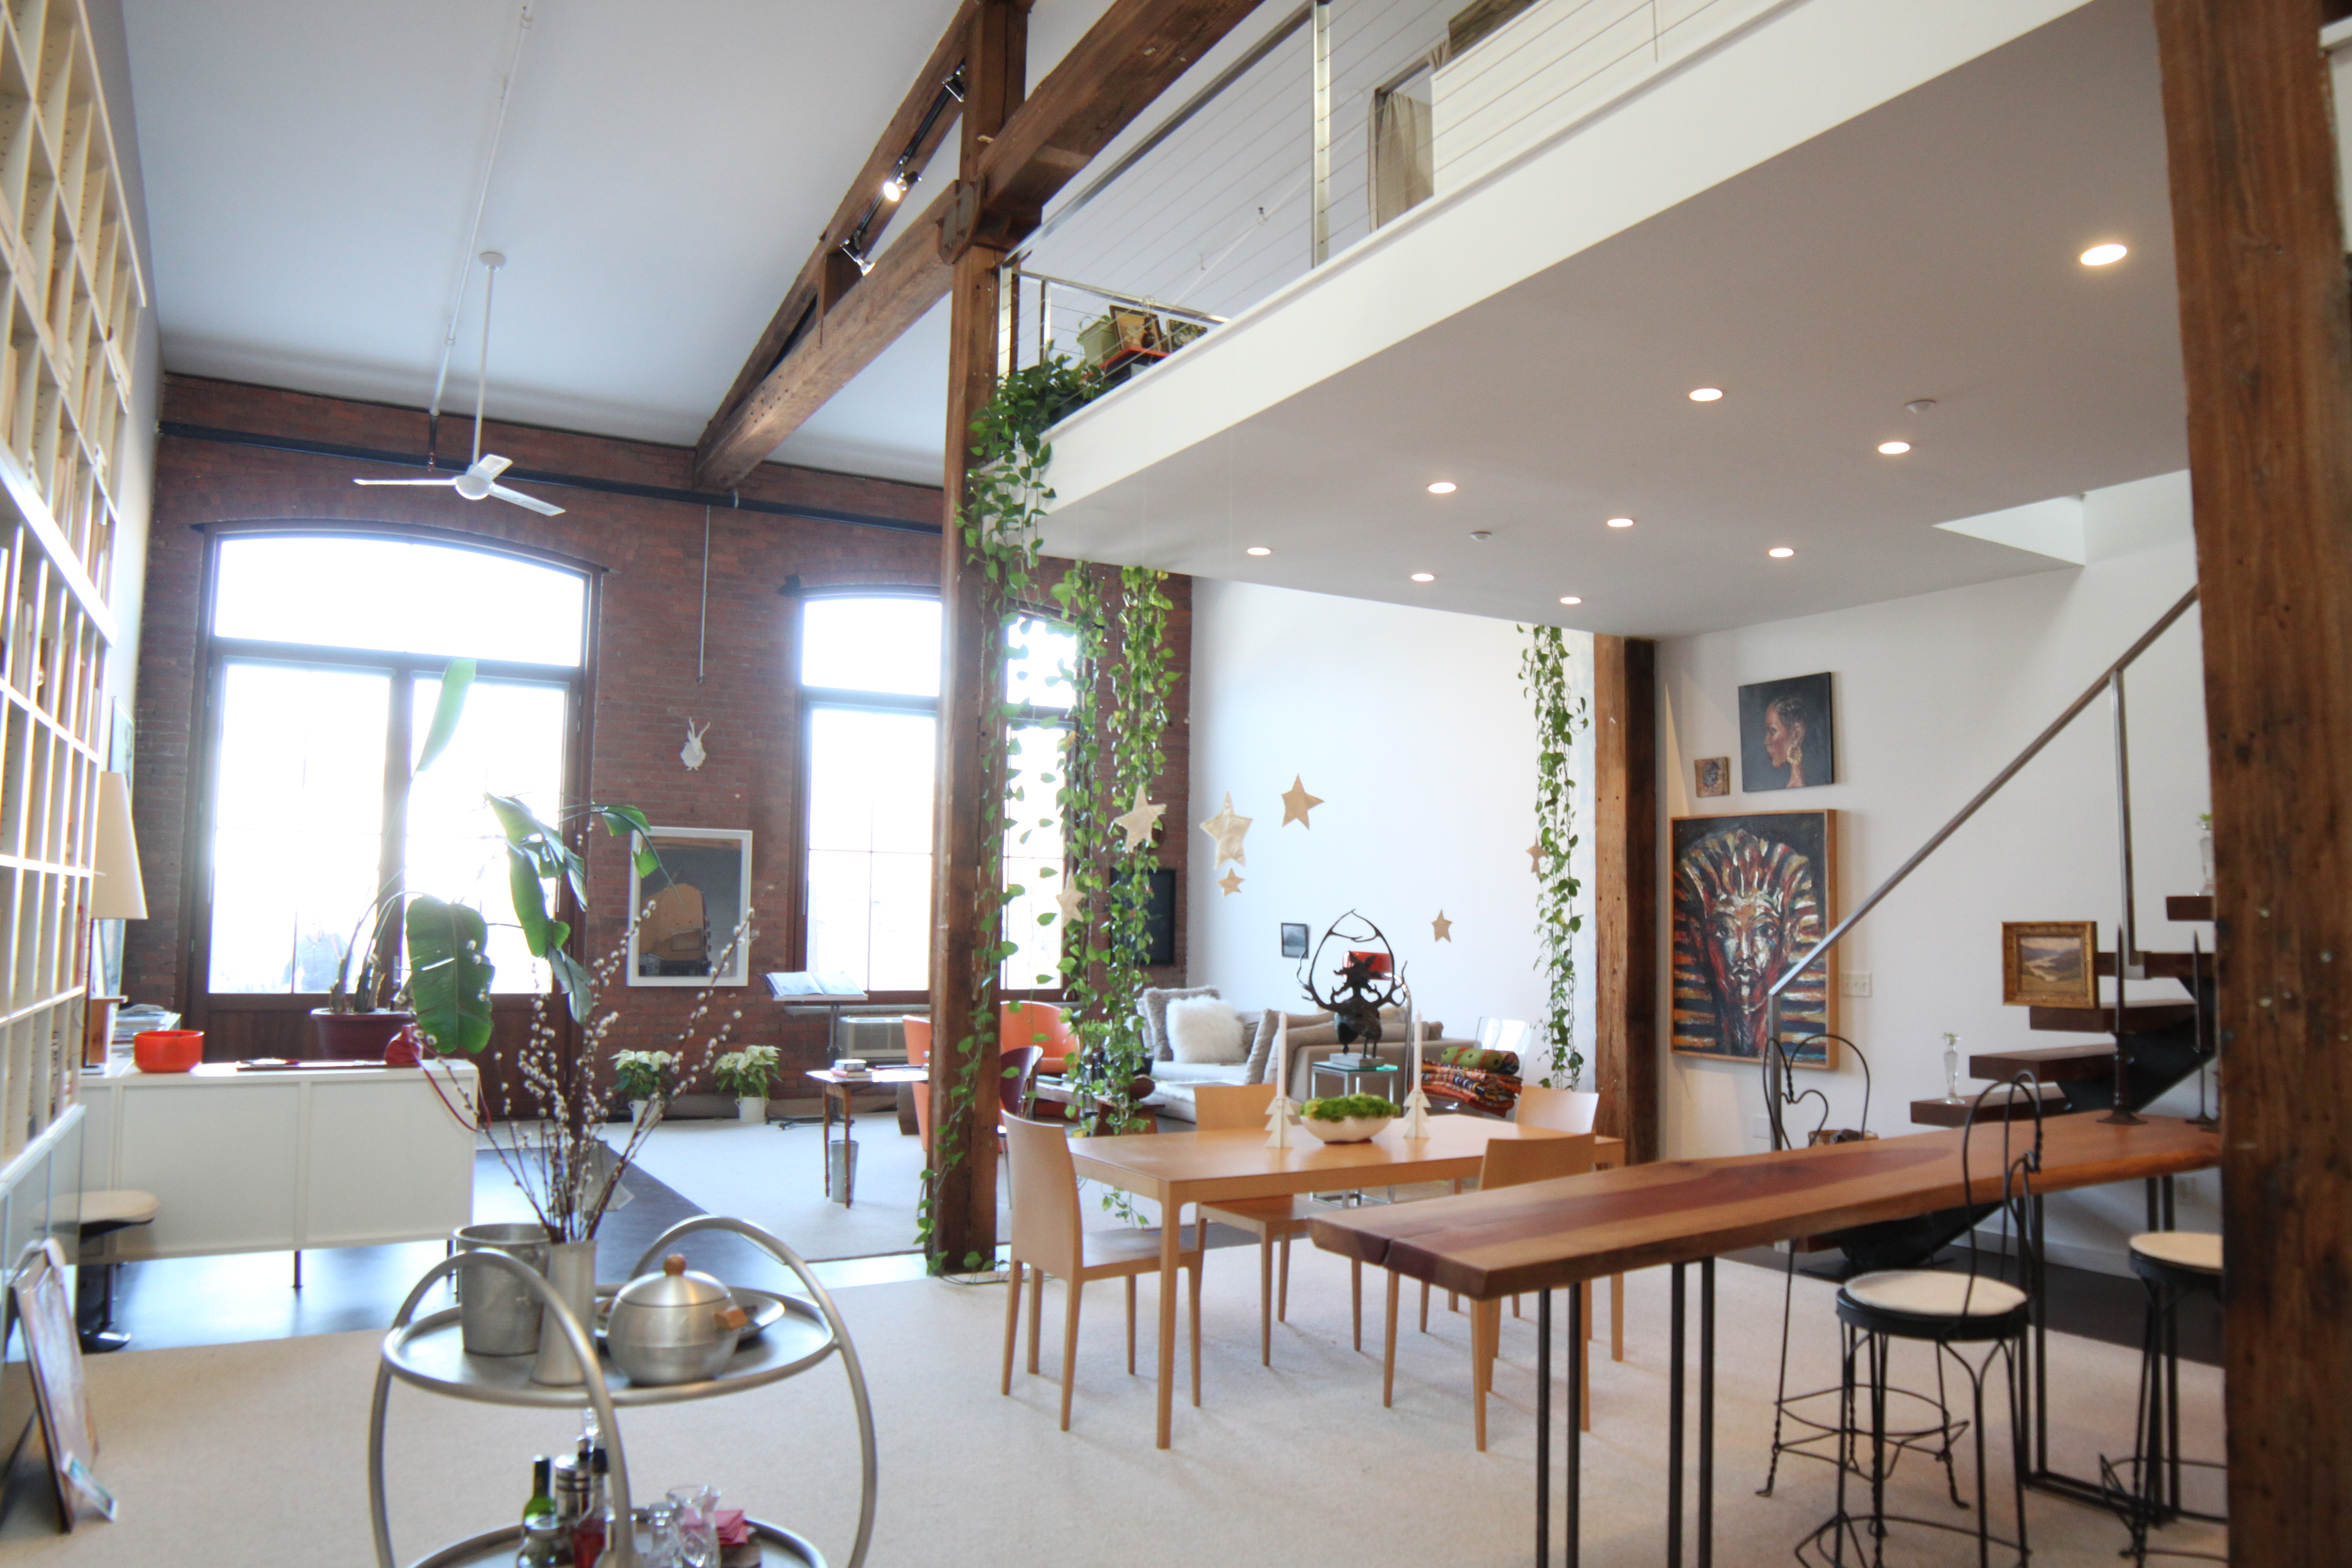 Beacon Ny Loft In Historic Building With 25 Foot Ceilings